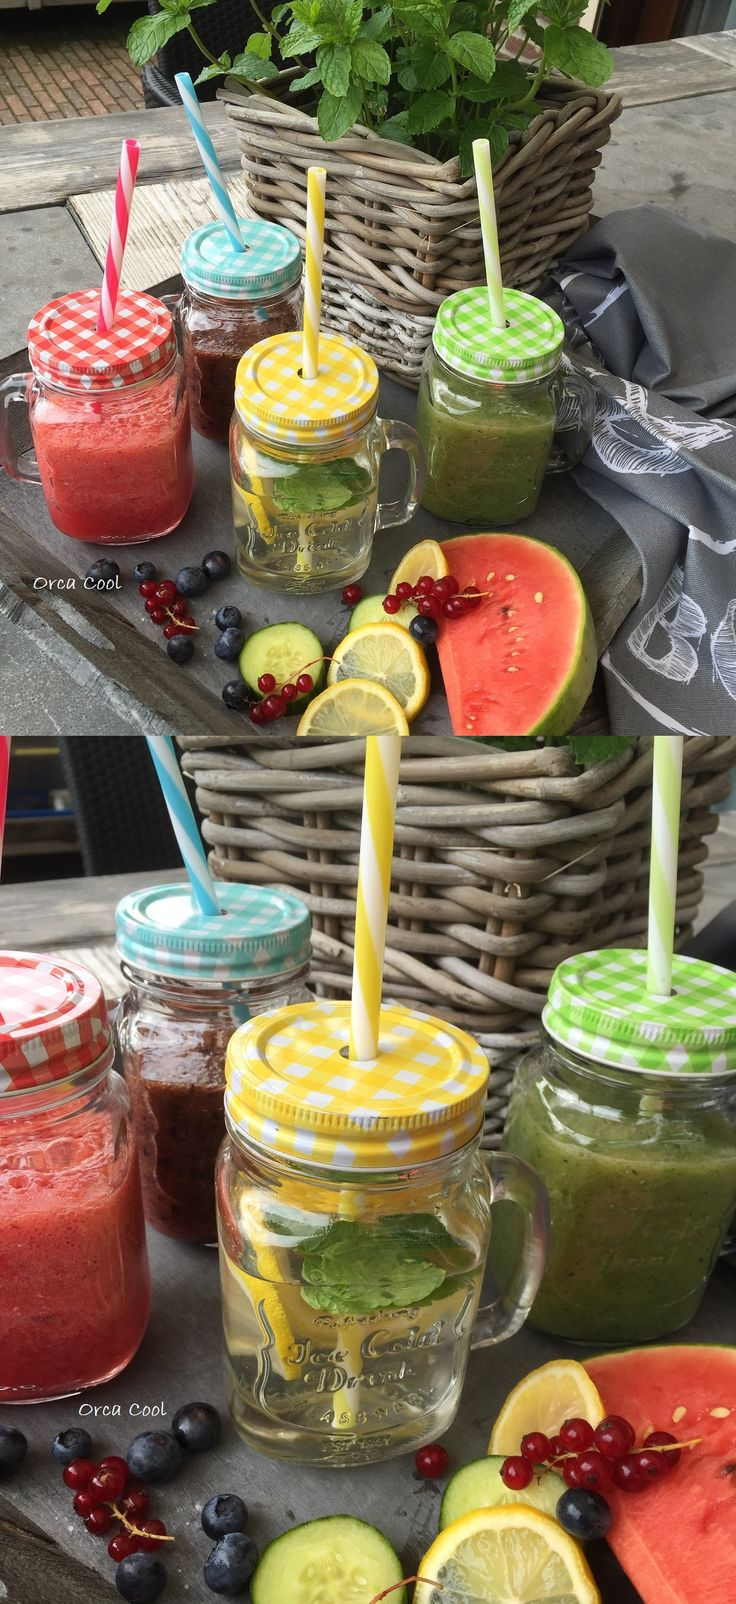 Healthy Drinks in lovely Jars...